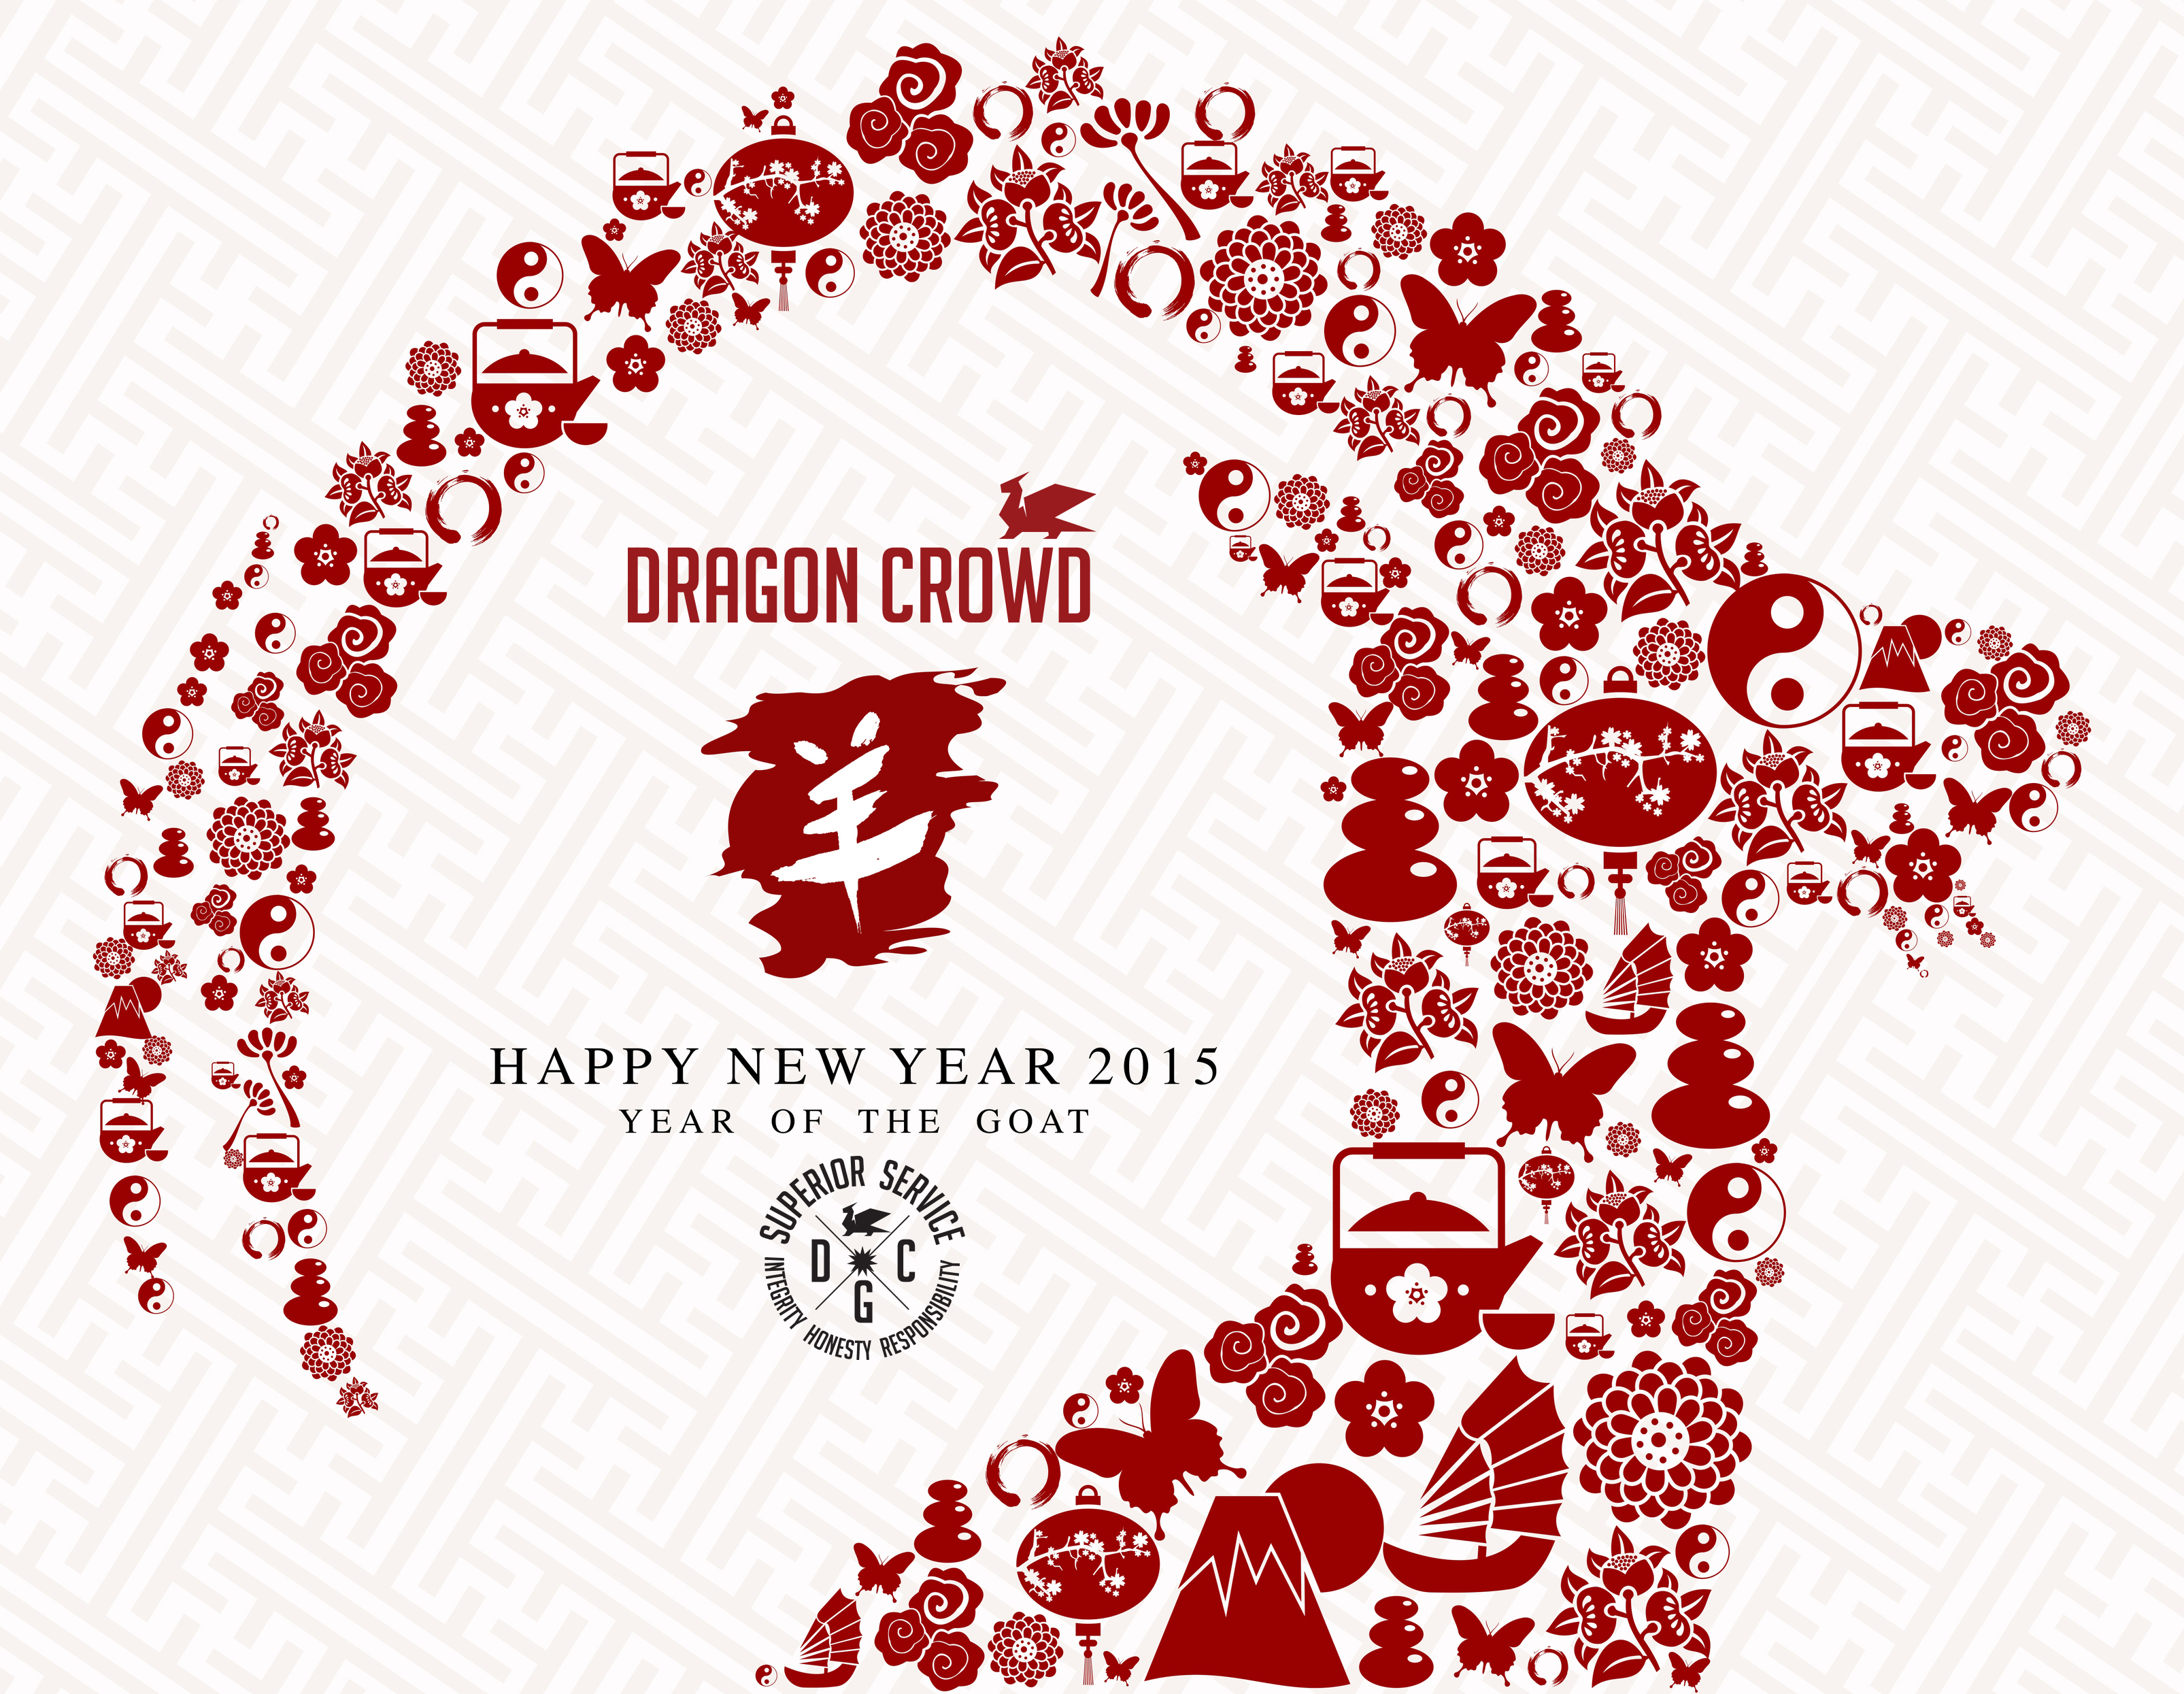 Chinese New Year Greetings For 2015 Gallery Greetings Card Design